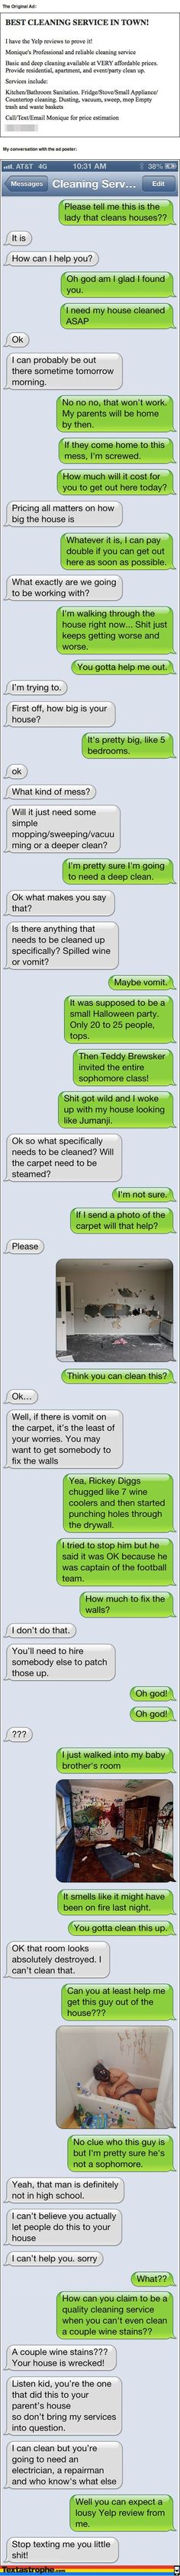 Hilarious texting responses to adds or flyers Serious hurts to read from laughing so hard